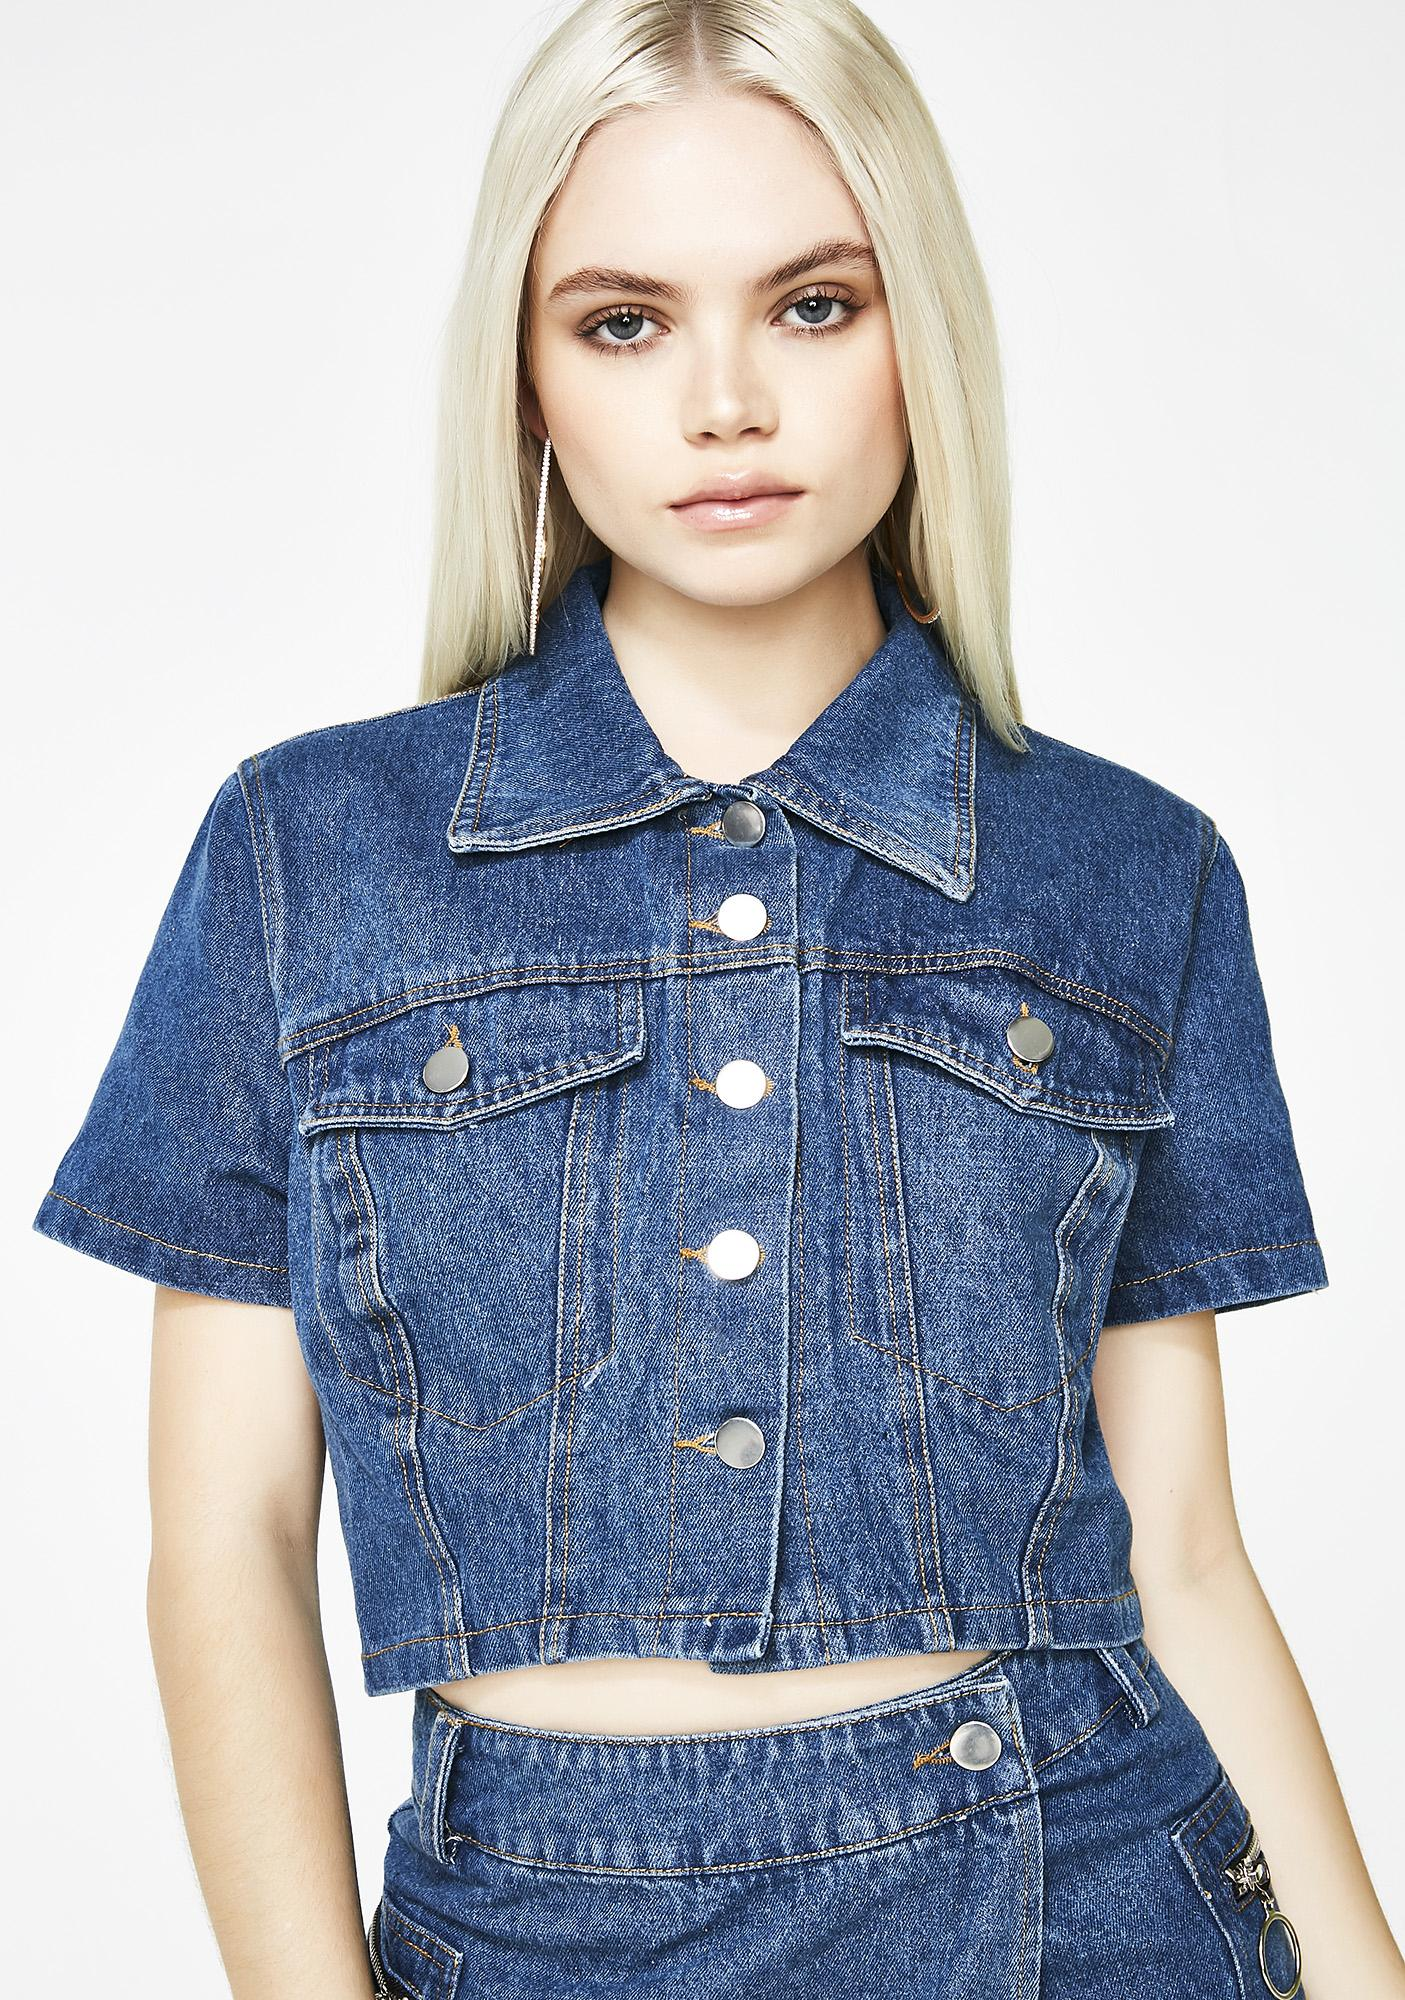 Let's Get Down Denim Top